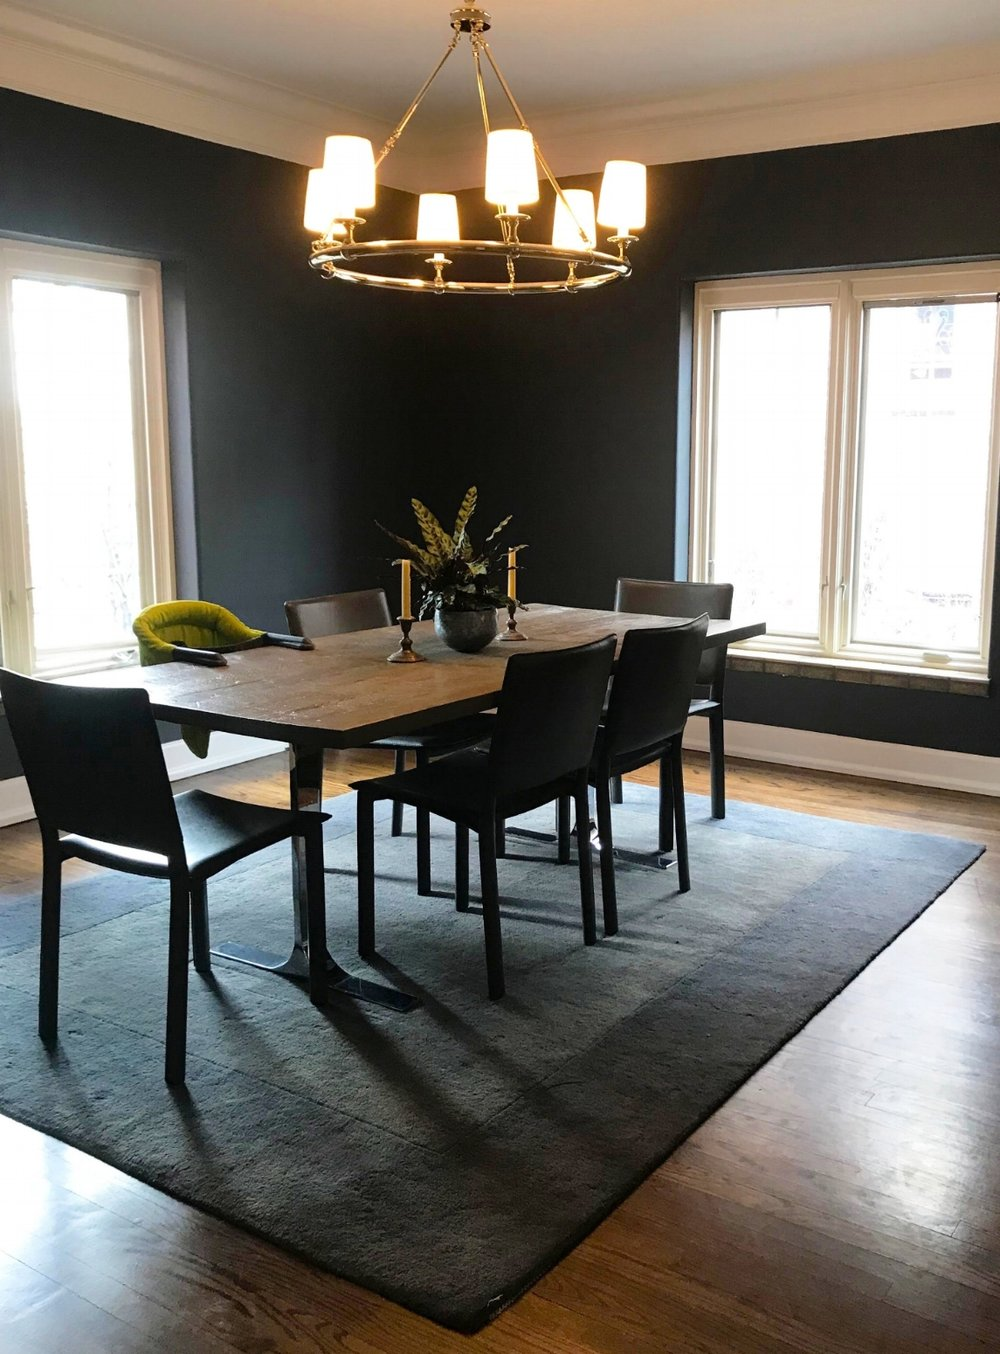 The first step... - ...in shopping for a dining table is determining your needs and wants. Do you need an extendable dining table? Do you have a certain style in mind?